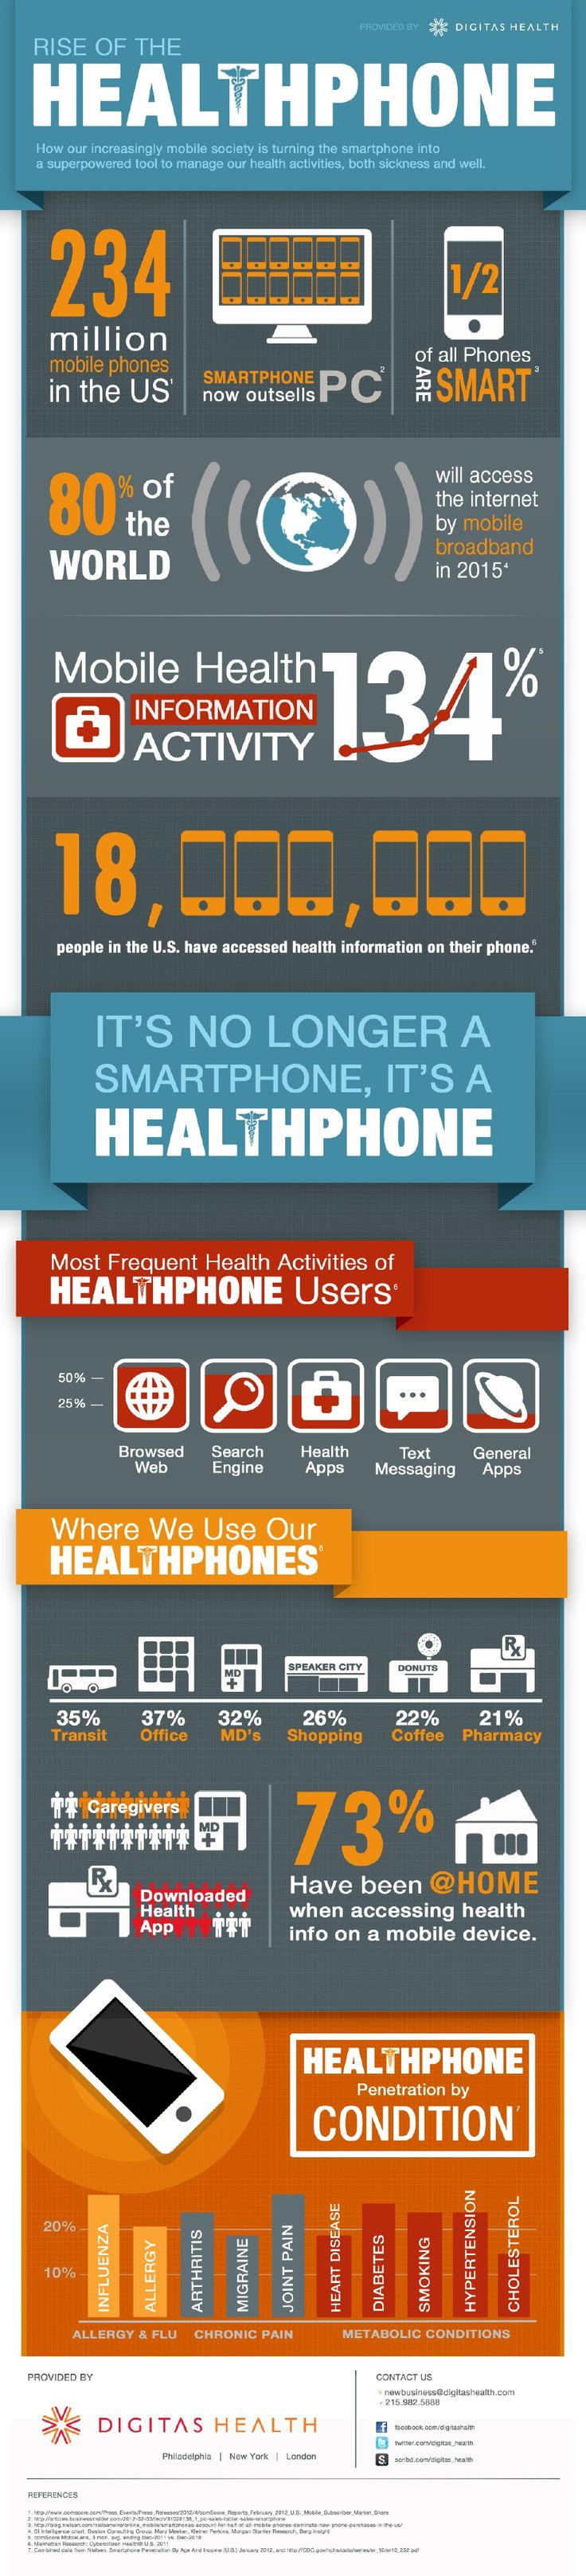 Rise of the #Healthphone: How our increasingly mobile society is turning the smartphone into a superpowered tool to manage our #health activities, both sickness and well. #mhealth